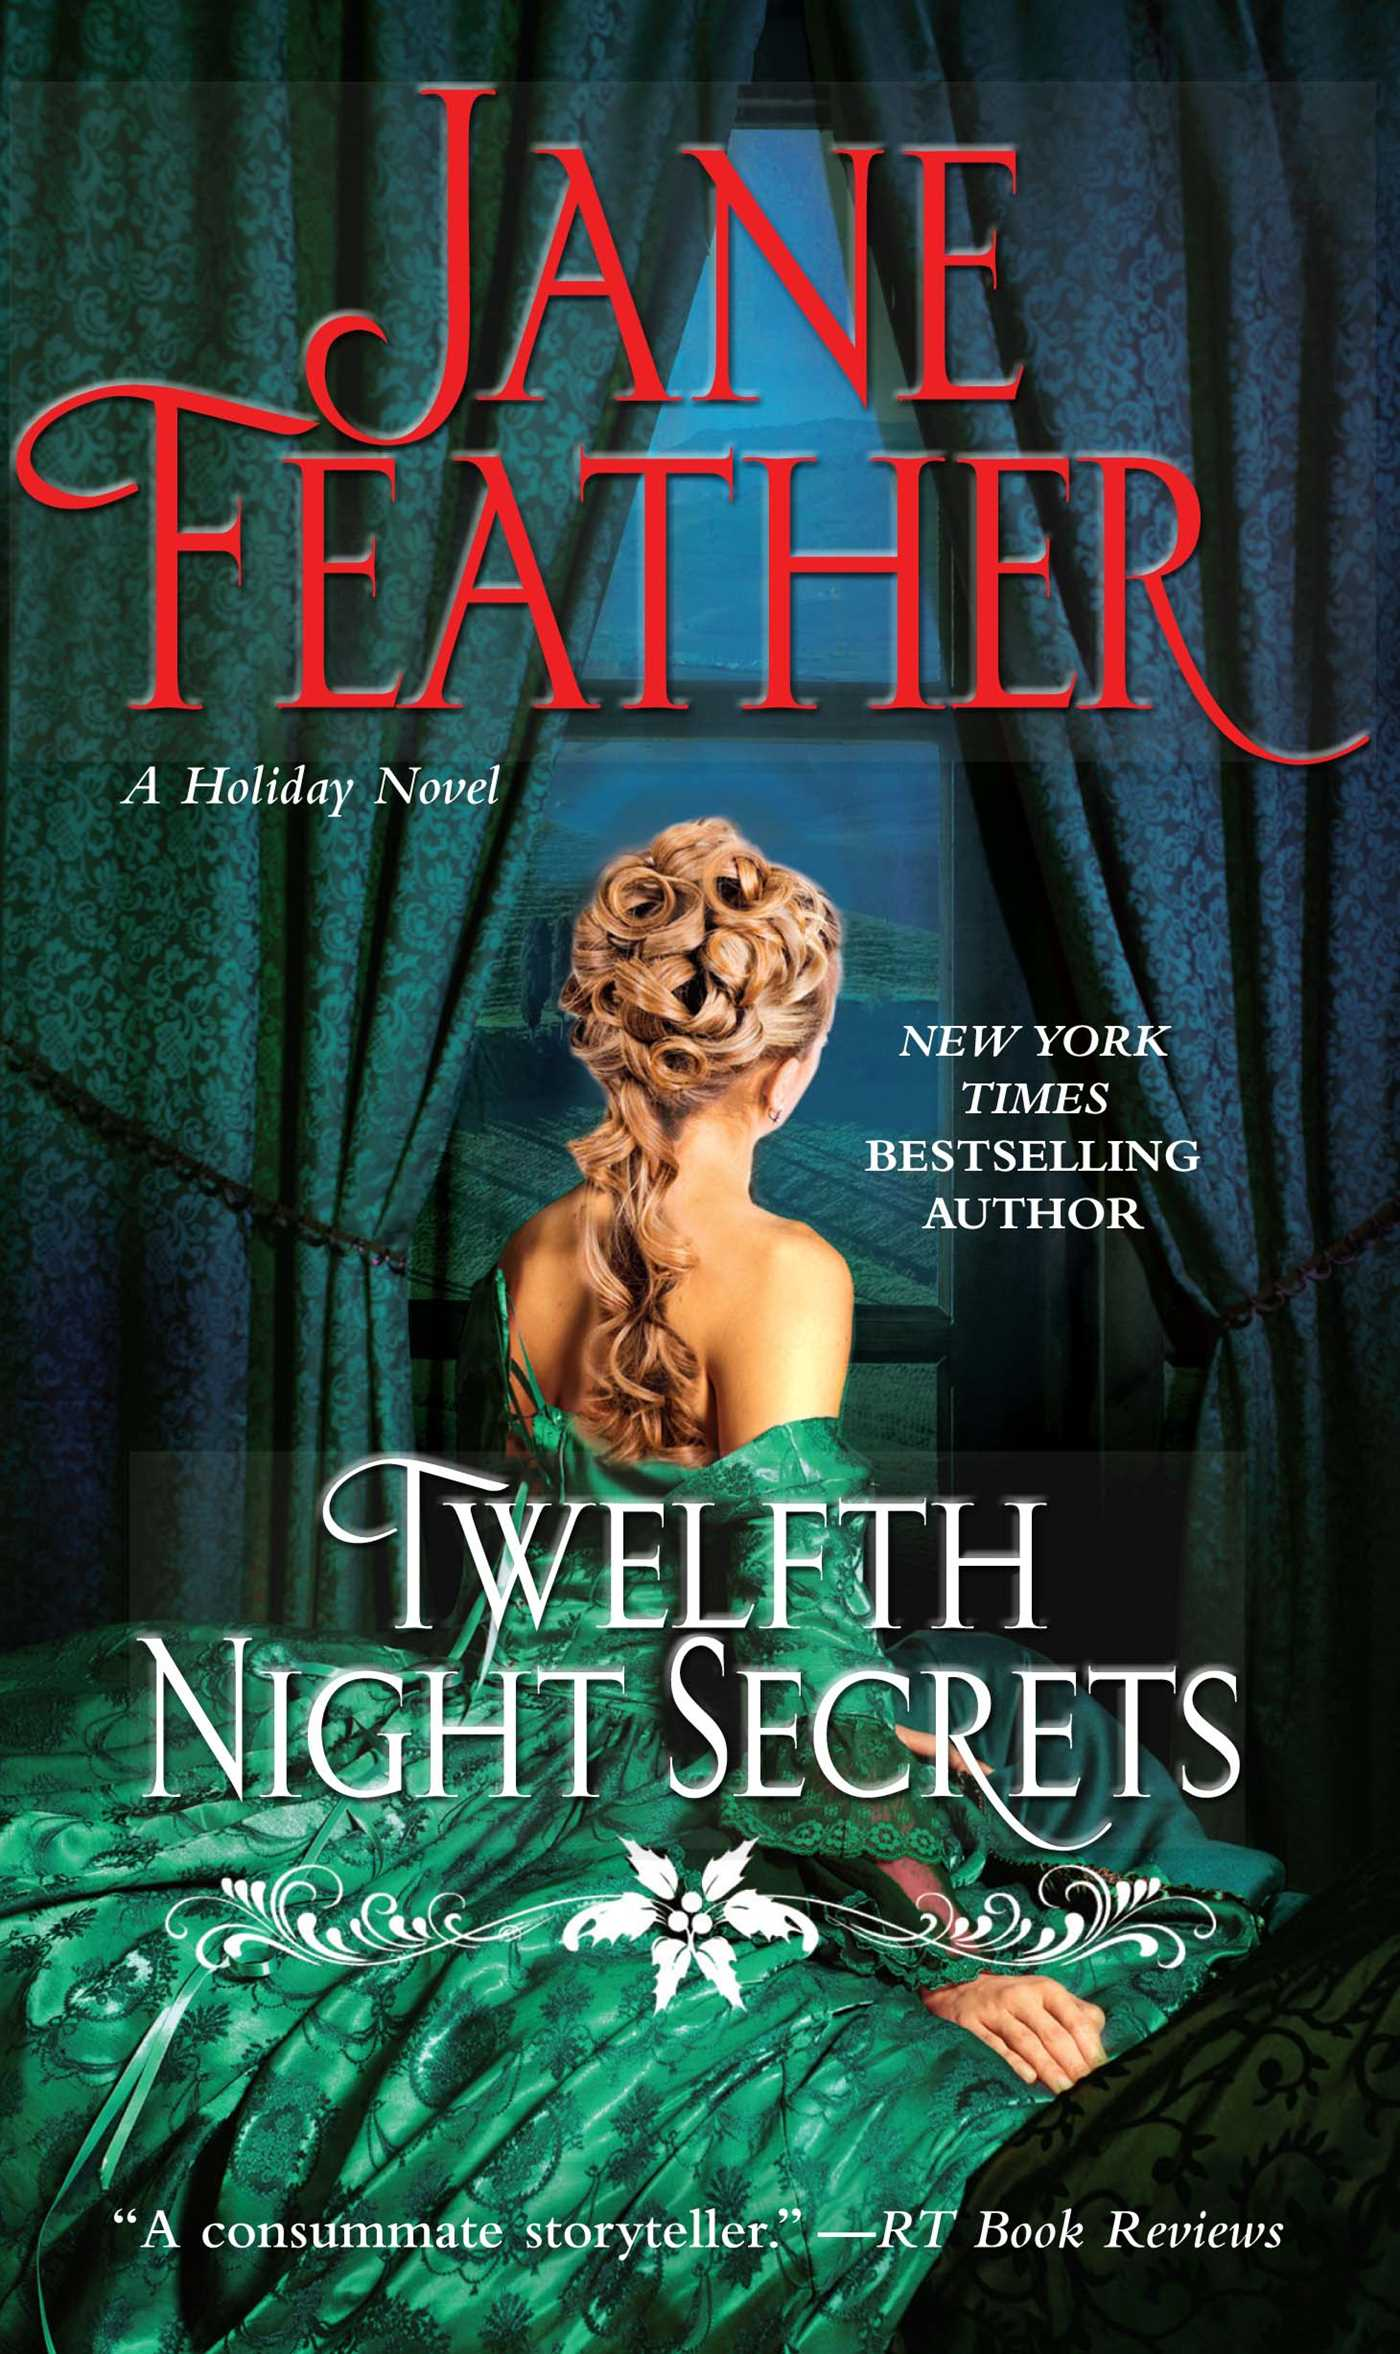 Twelfth-night-secrets-9781439155523_hr